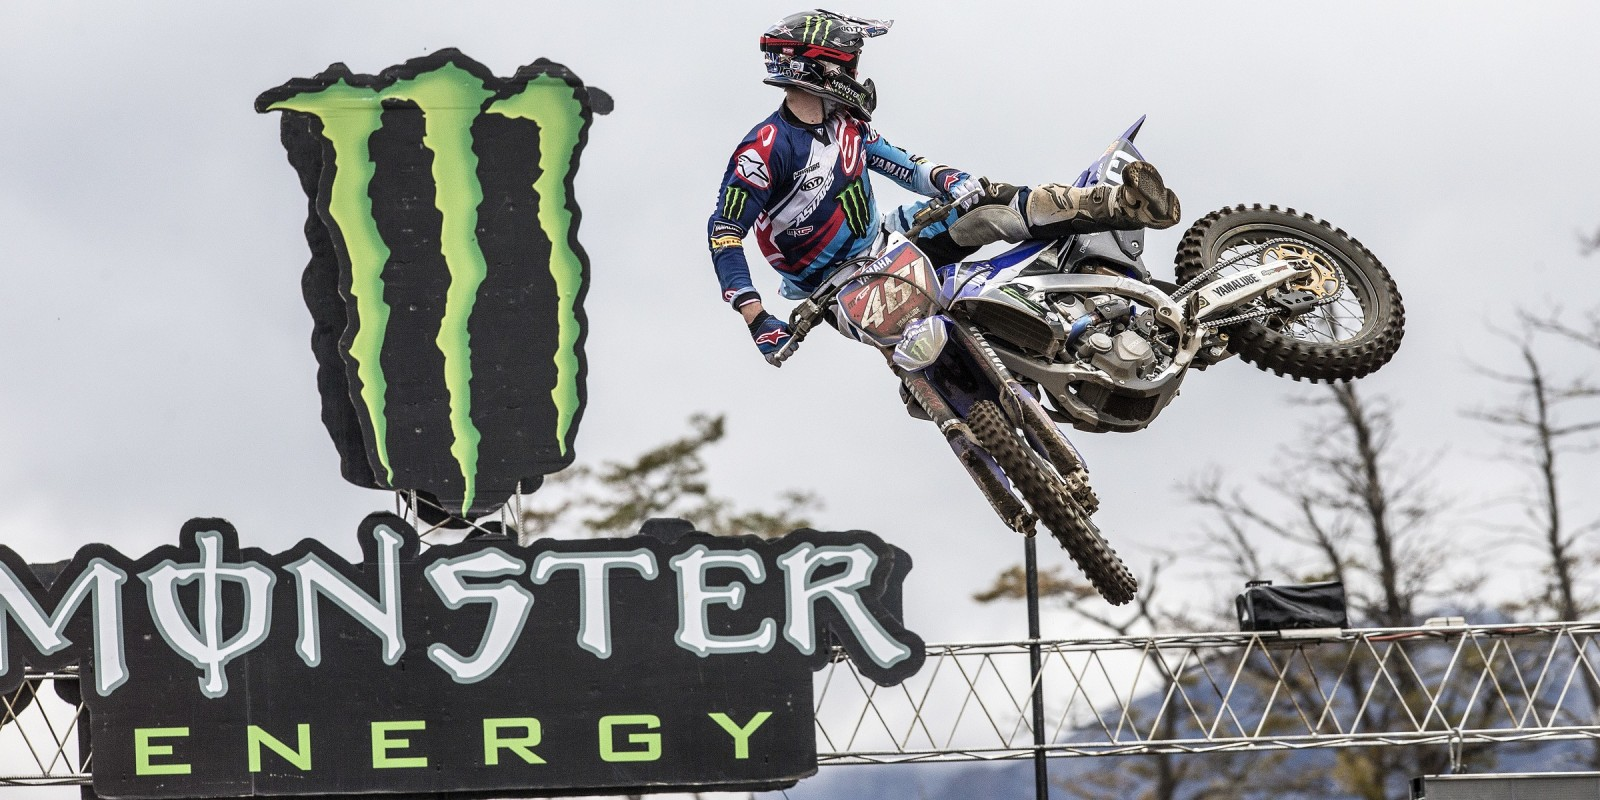 Romain Febvre at the 2016 MXGP of Argentina